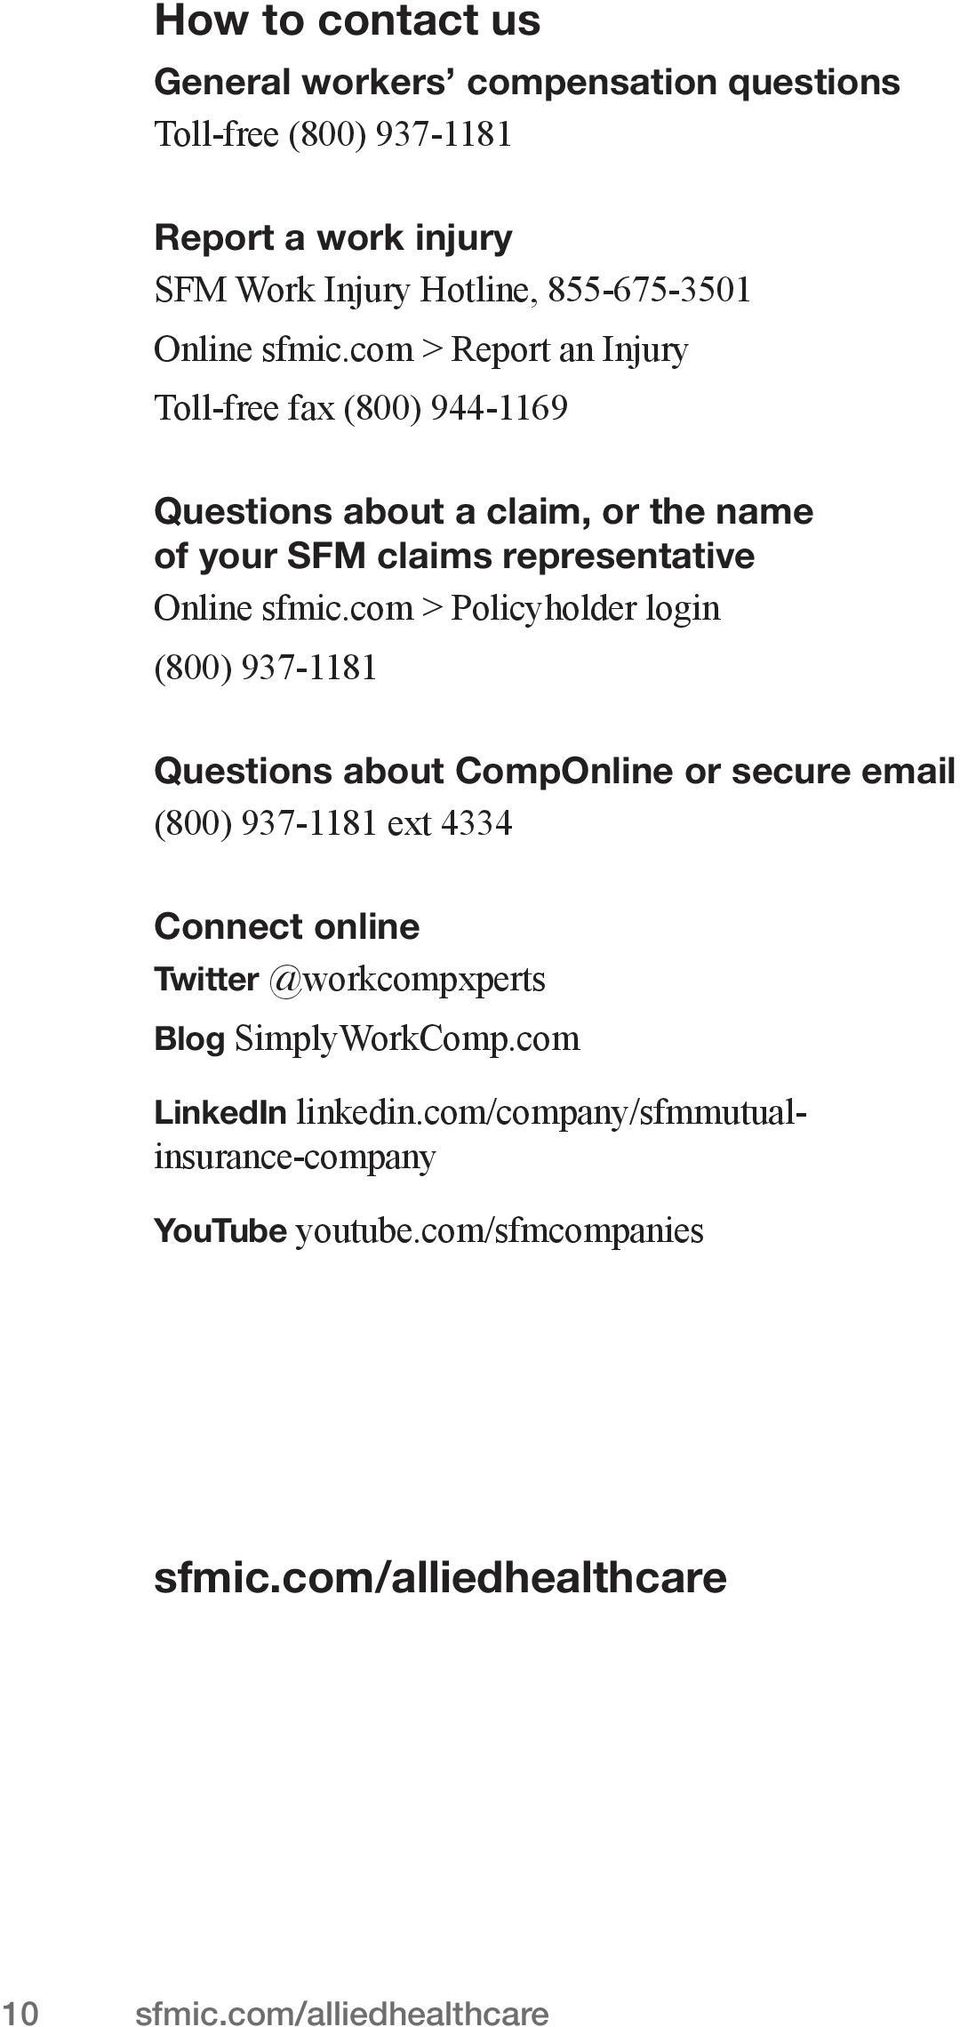 com > Policyholder login (800) 937-1181 Questions about CompOnline or secure email (800) 937-1181 ext 4334 Connect online Twitter @workcompxperts Blog